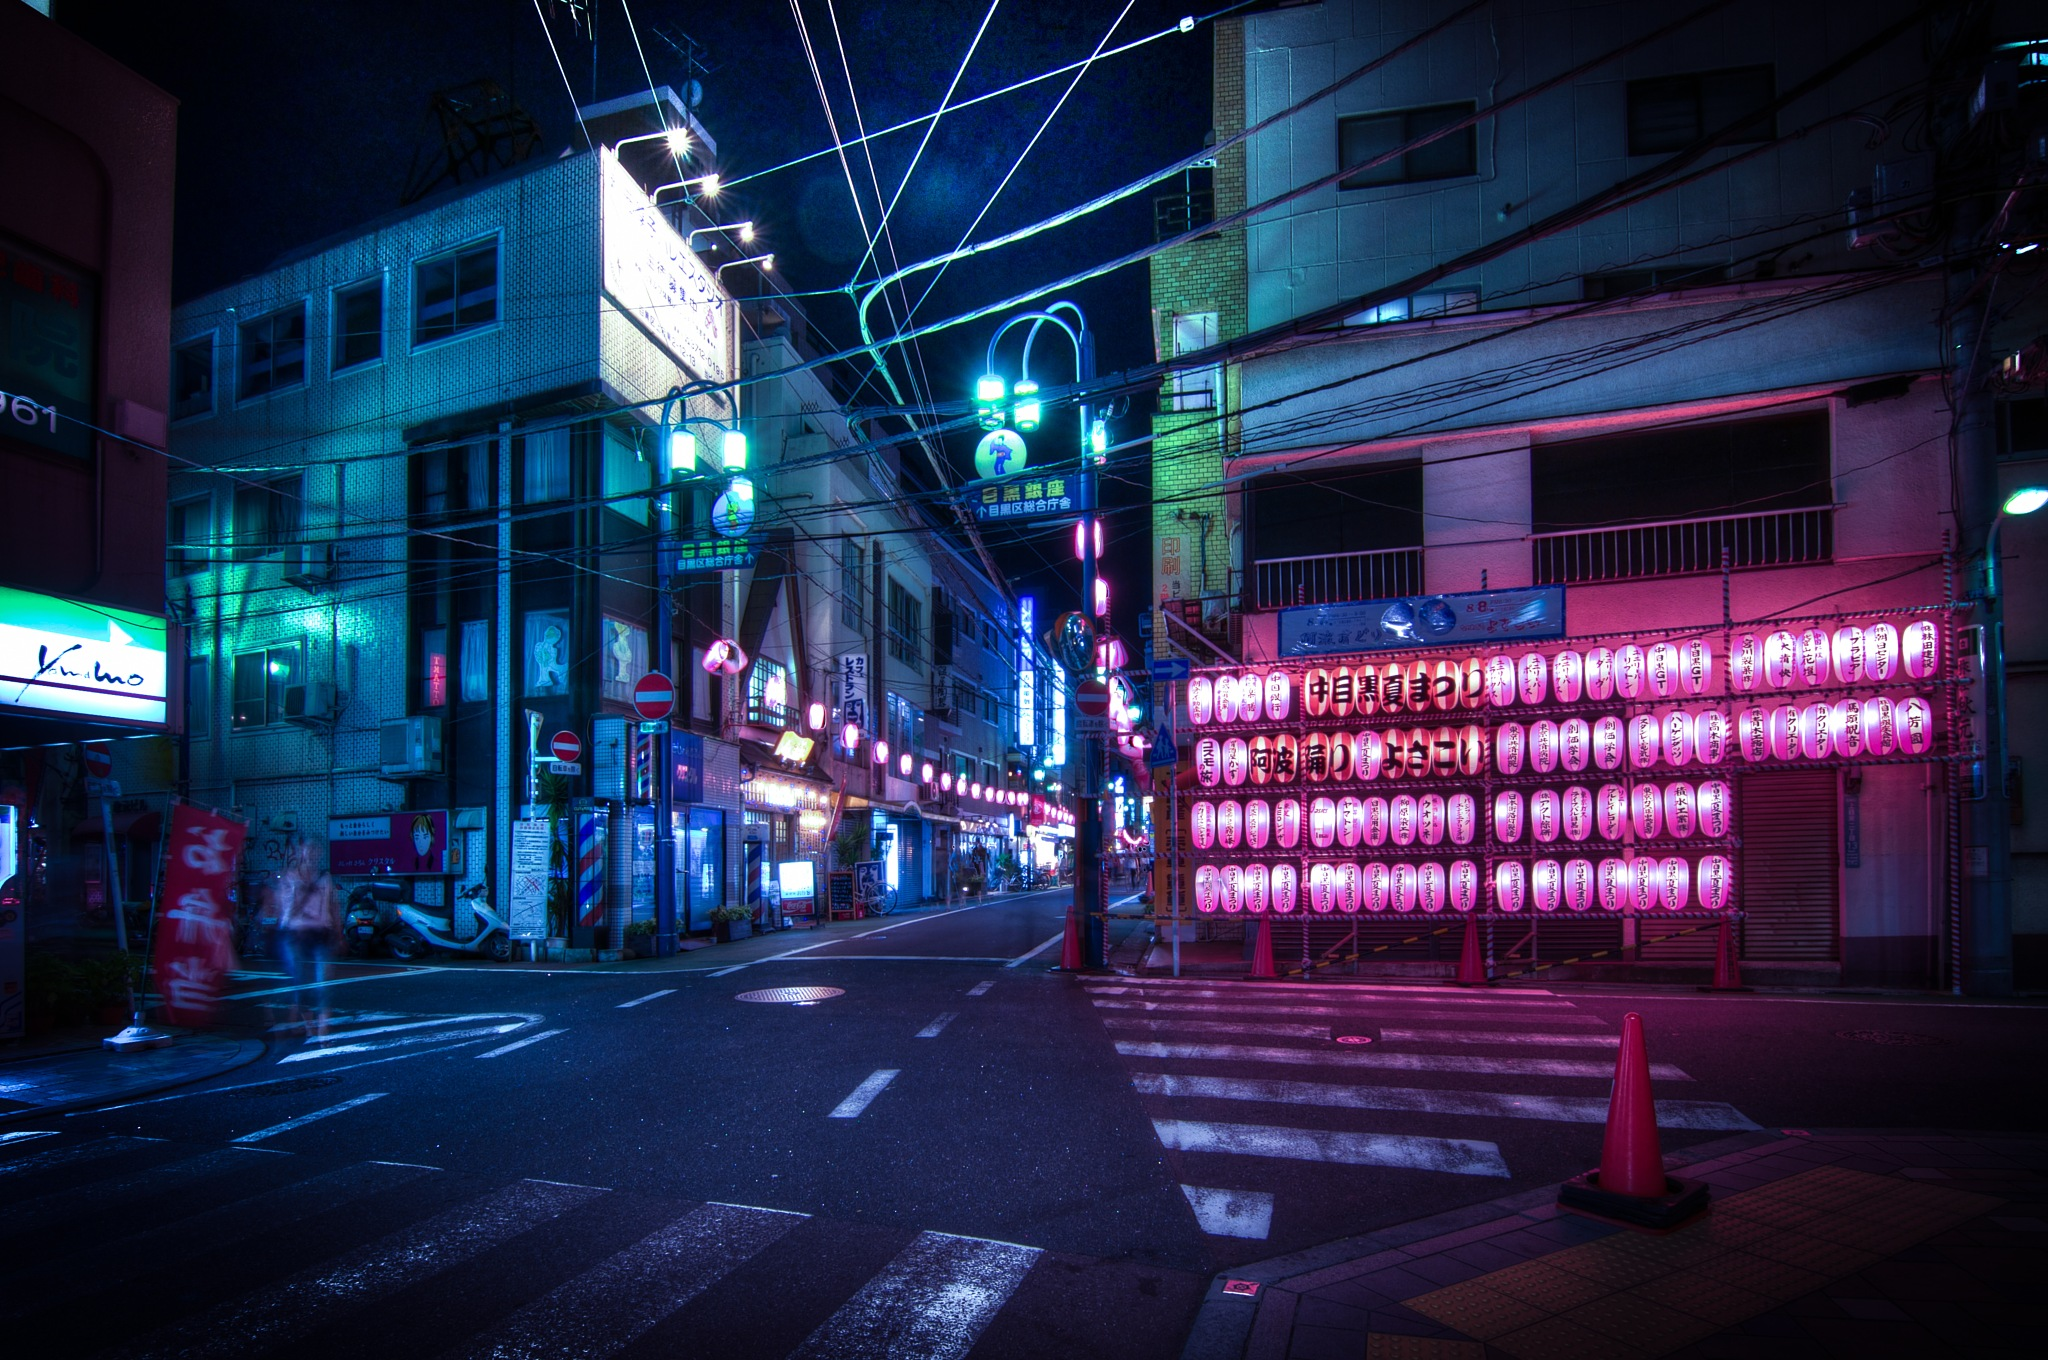 Nakameguro at night by Guillaume Marcotte